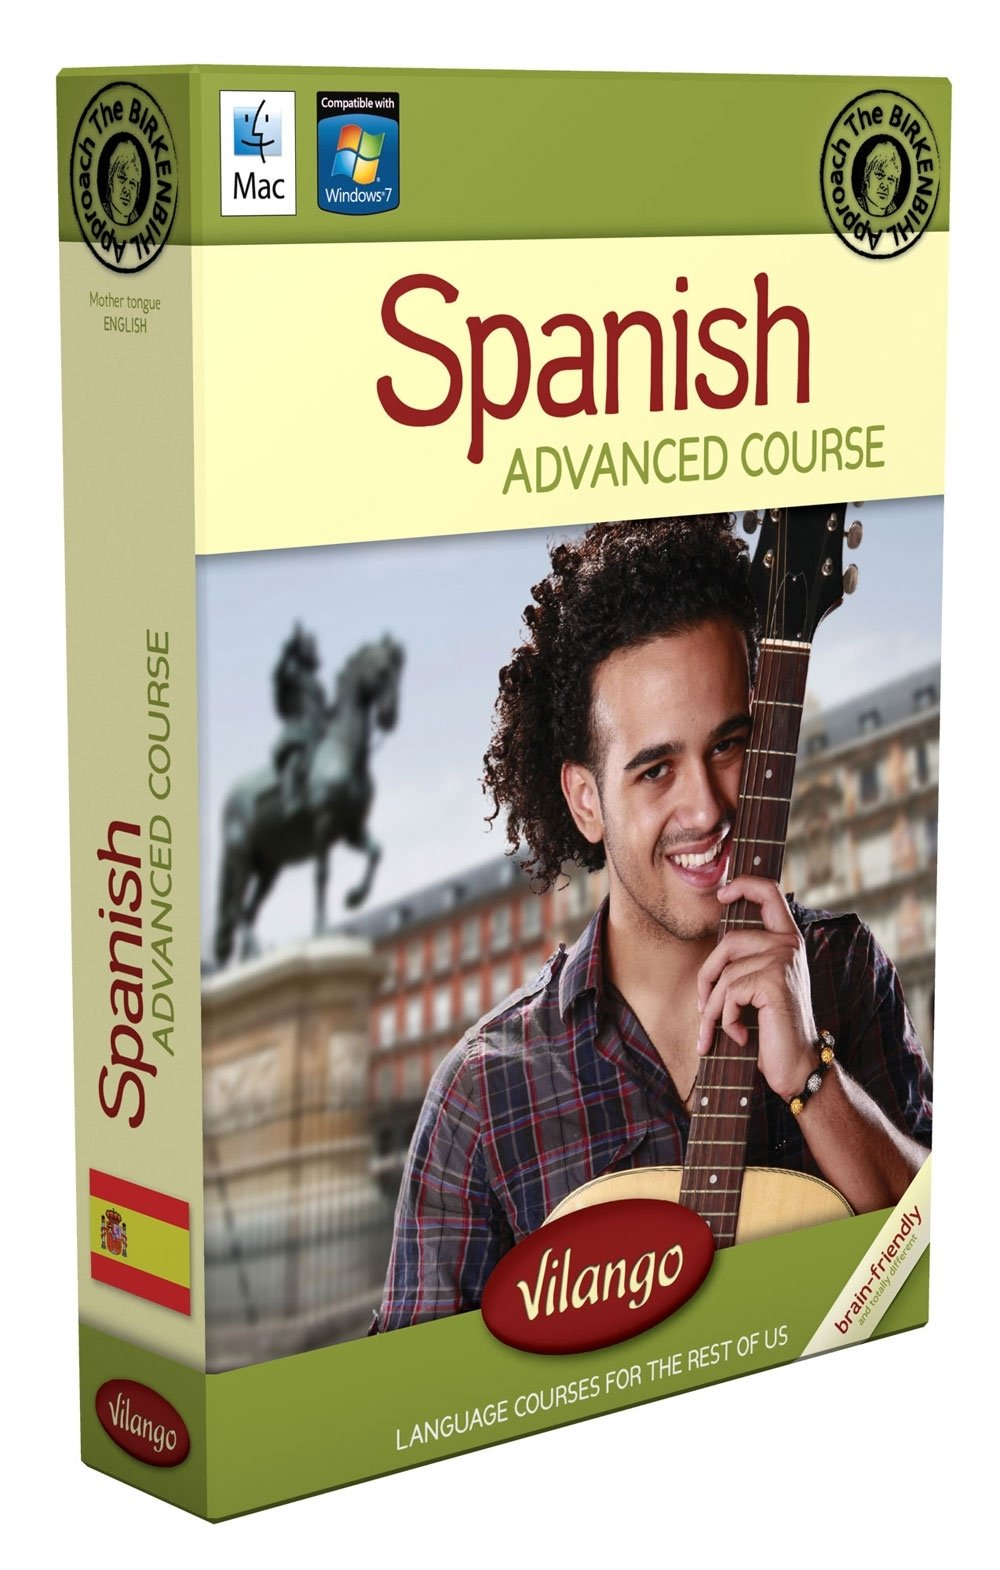 Spanish Brain-friendly, Computer/audio Course, Mac, Pc: Advanced Course Part 1: Learning Spanish Brain-friendly, Computercourse Vilango